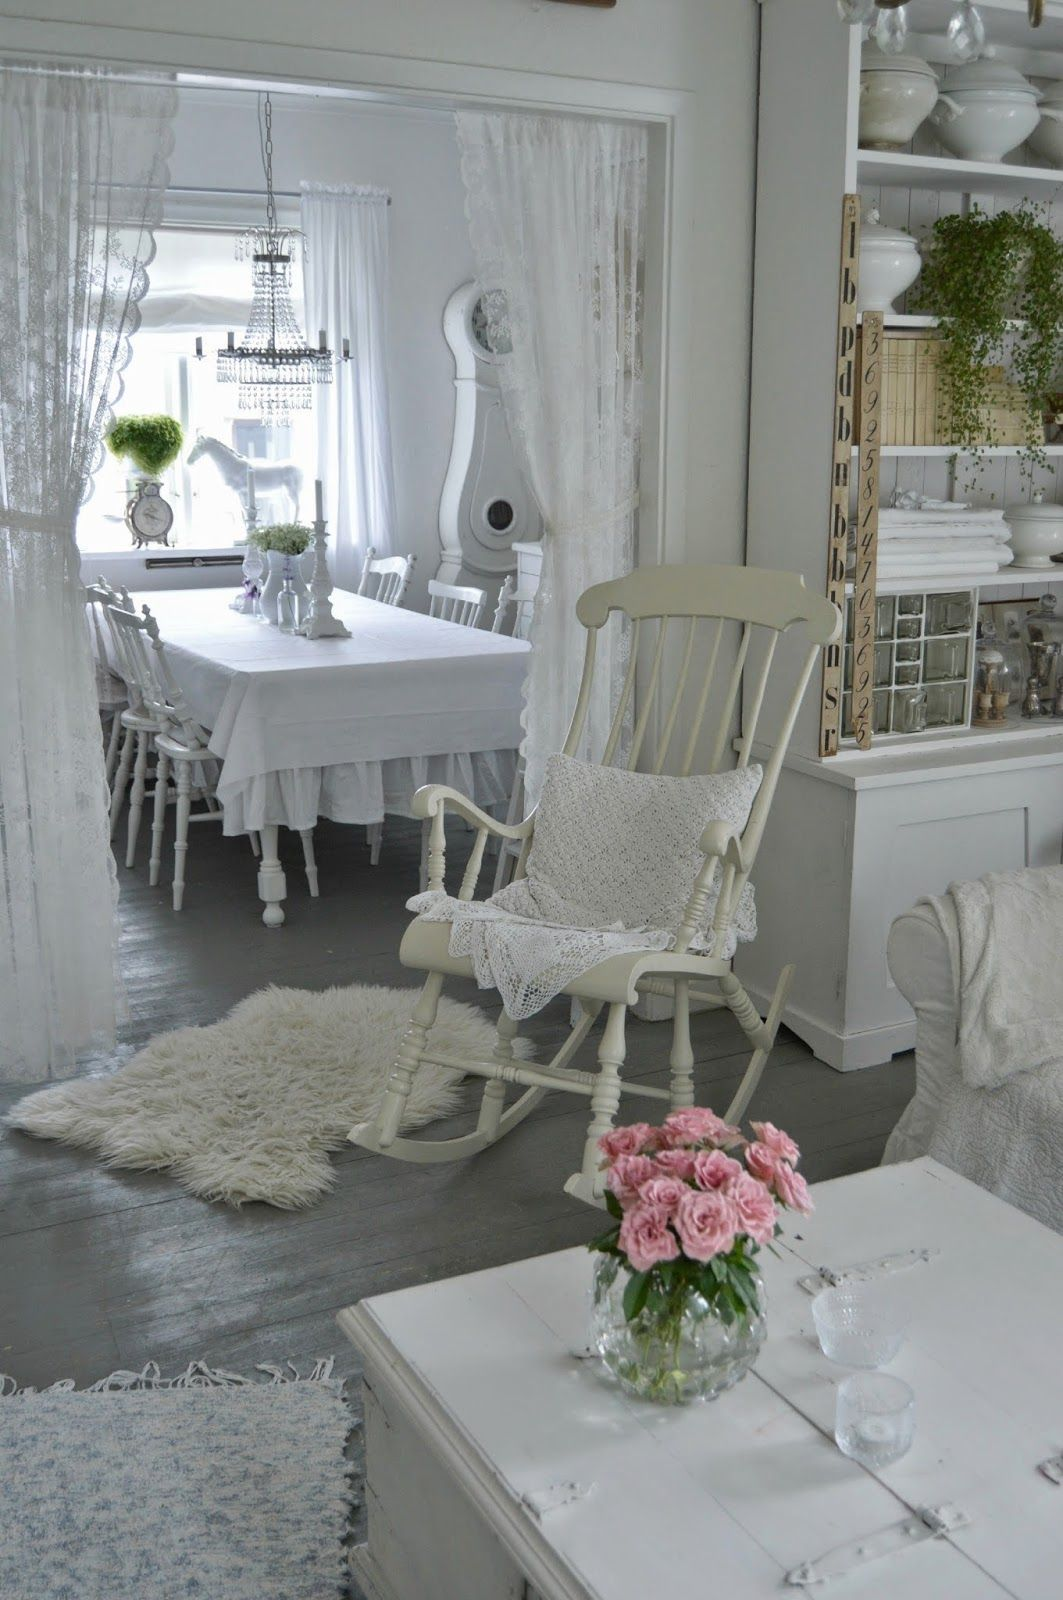 Shabby Chic Dekoration Just Our Style Love The White Clean Shabby Chic In These Rooms Www